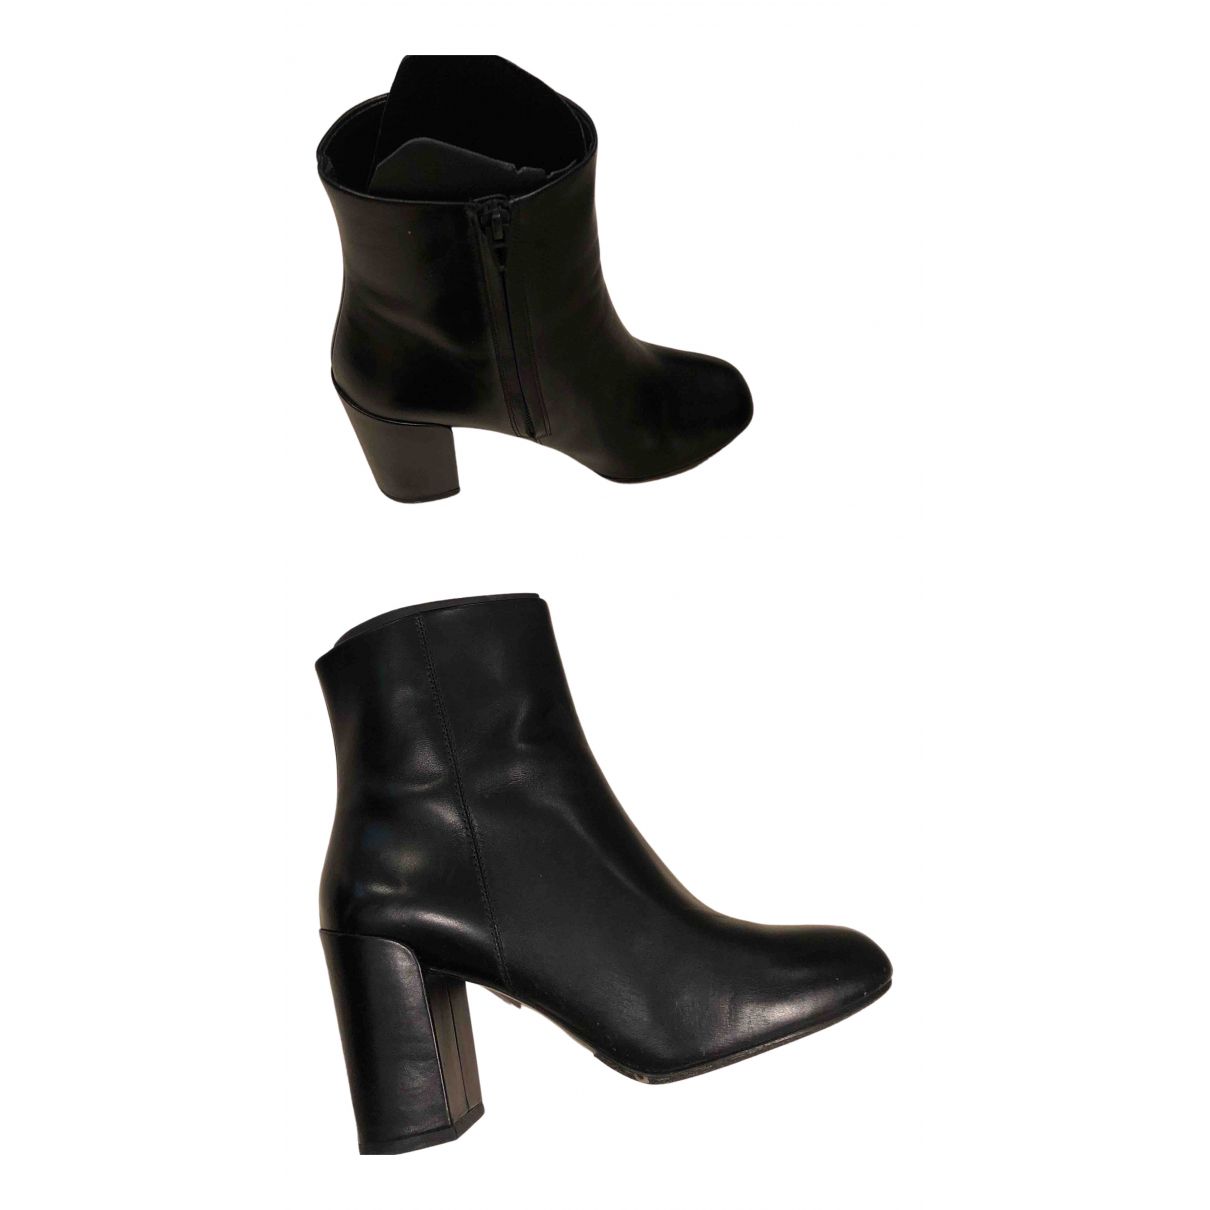 Alexander Wang N Black Leather Ankle boots for Women 39 EU